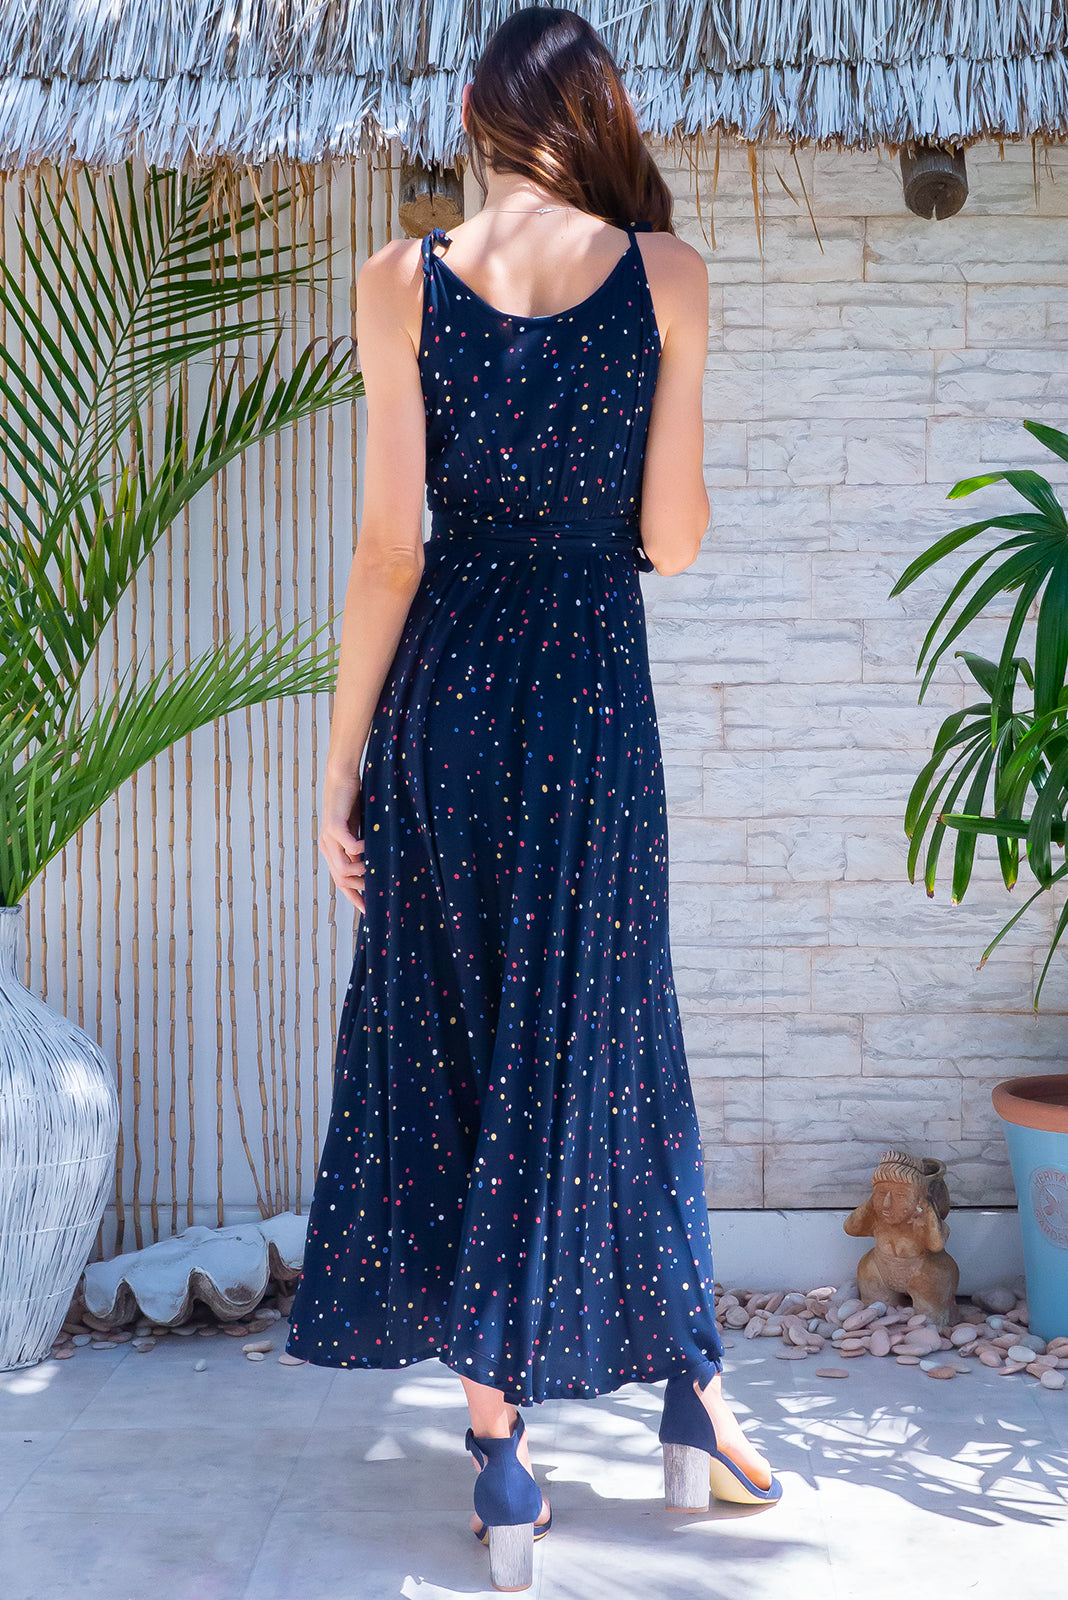 The Byron Ink Spot Maxi Wrap Dress is perfect for dinner dates and evening events, featuring functional wrap design, elastic back waist, adjustable shoulder ties and woven 100% rayon in navy base with small, multi-coloured polka dot design.